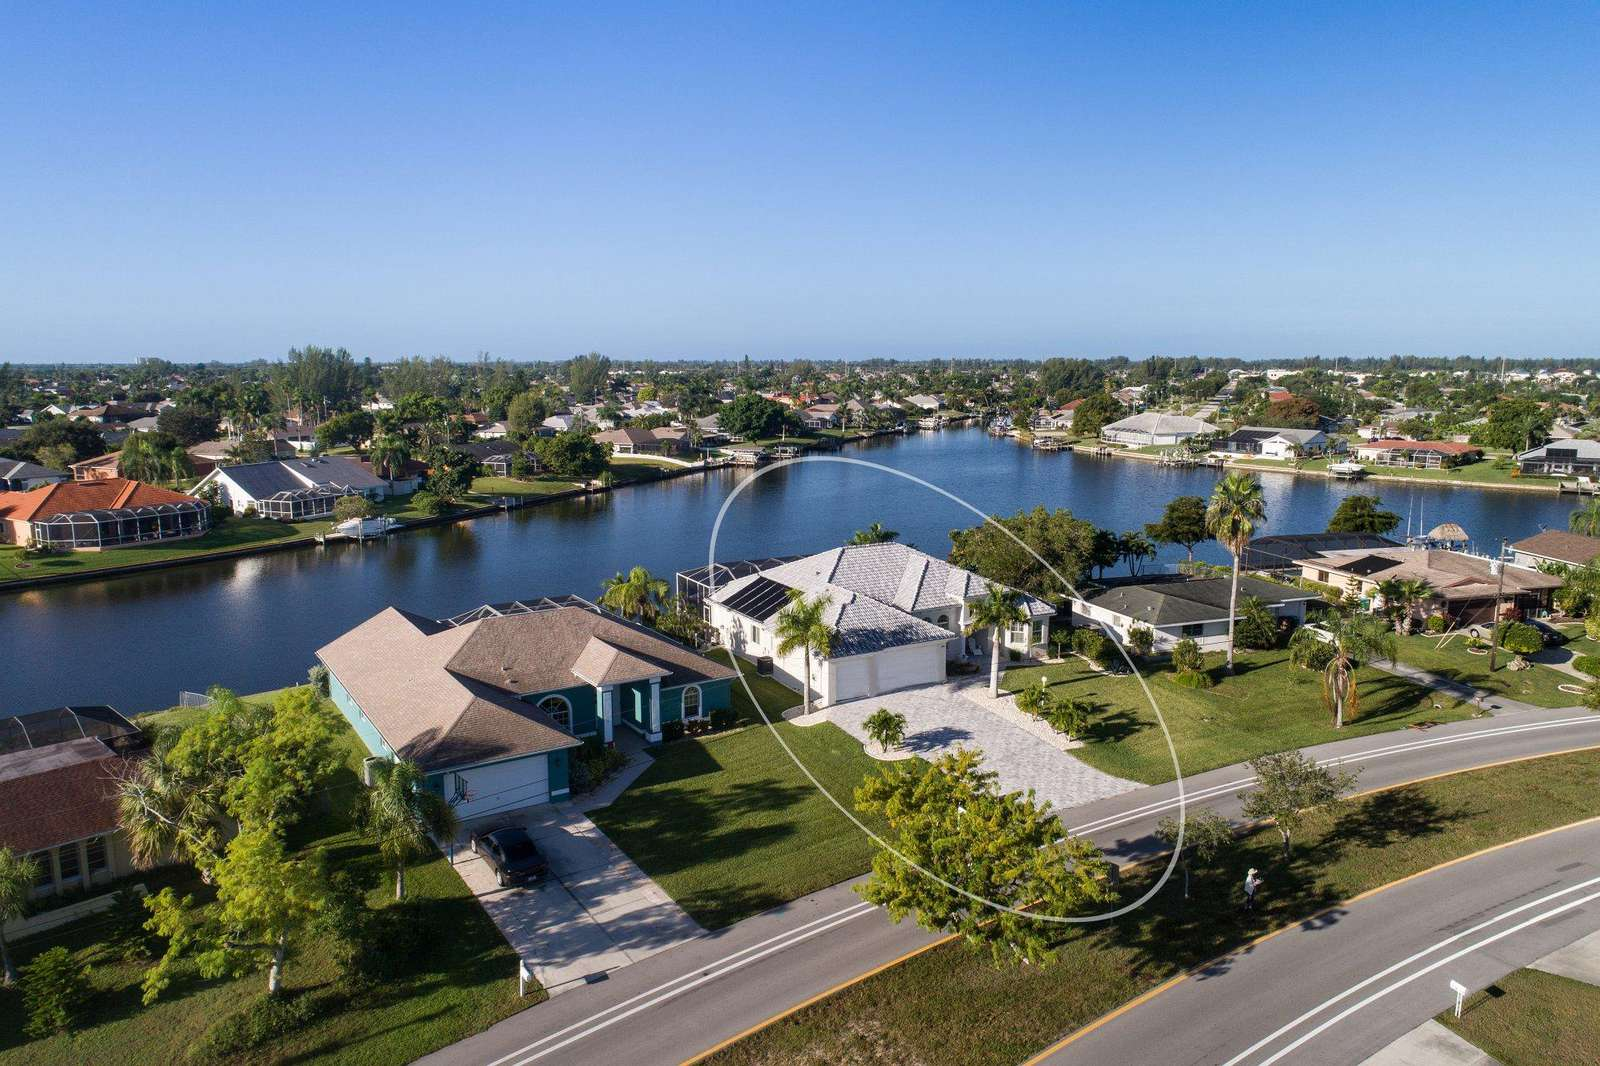 Wischis Florida Vacation Home - Vacation Rentals Cape Coral I Property Management I Real Estate